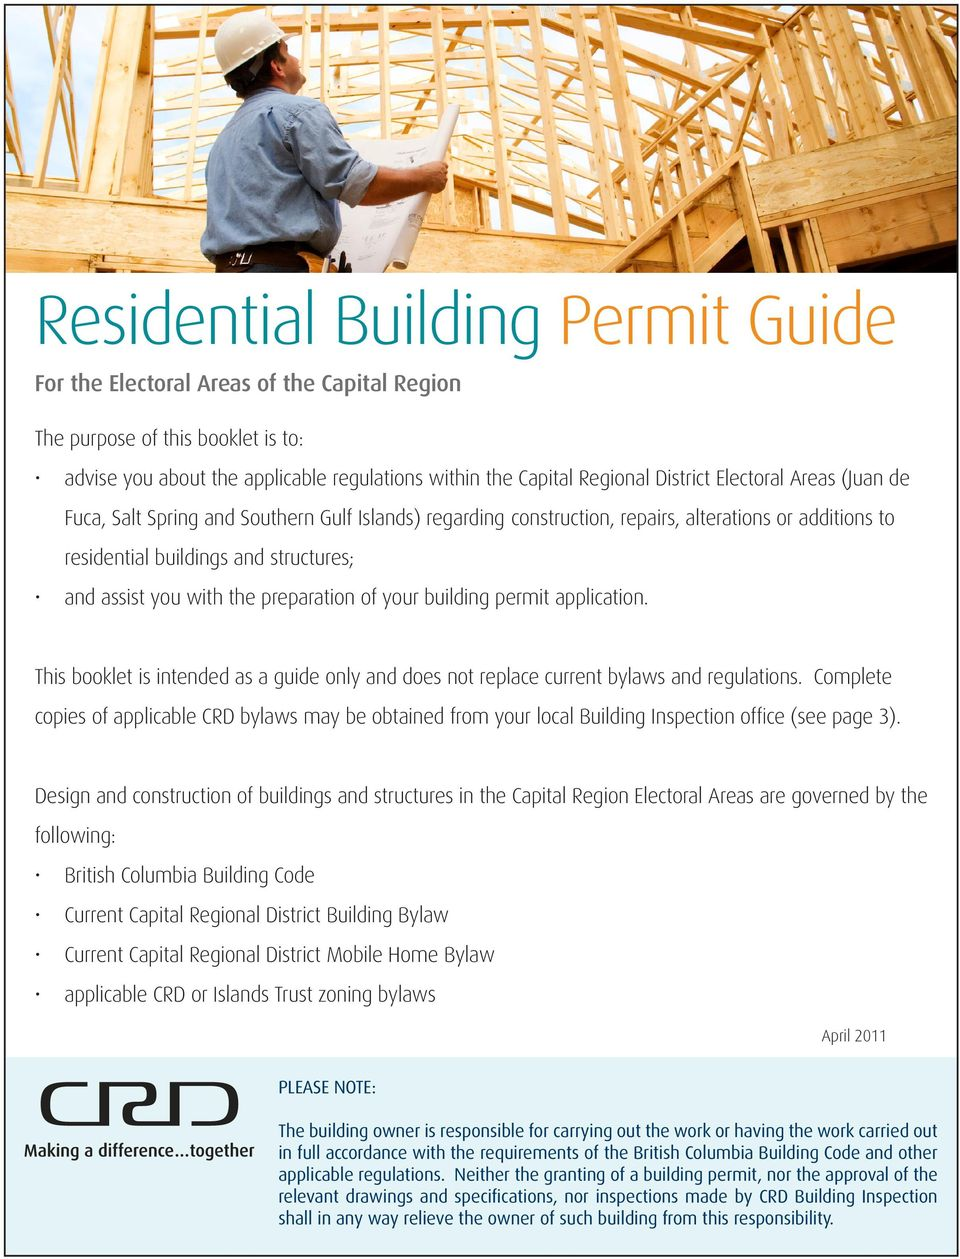 preparation of your building permit application. This booklet is intended as a guide only and does not replace current bylaws and regulations.